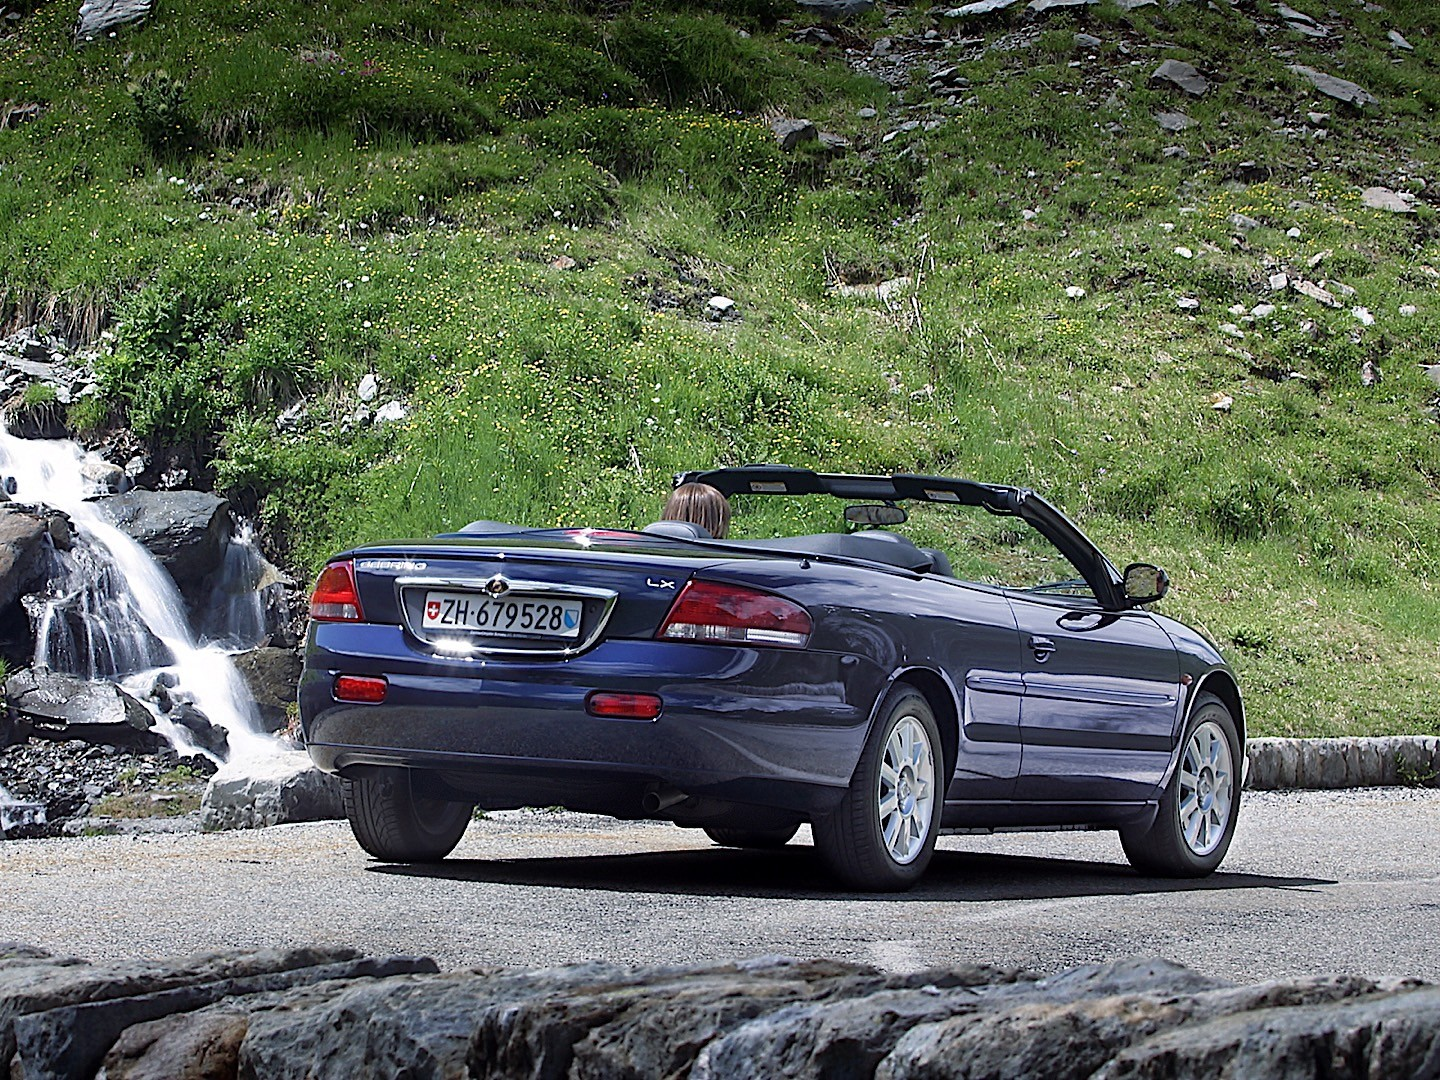 Chrysler Sebring Convertible on 2004 Dodge Grand Caravan